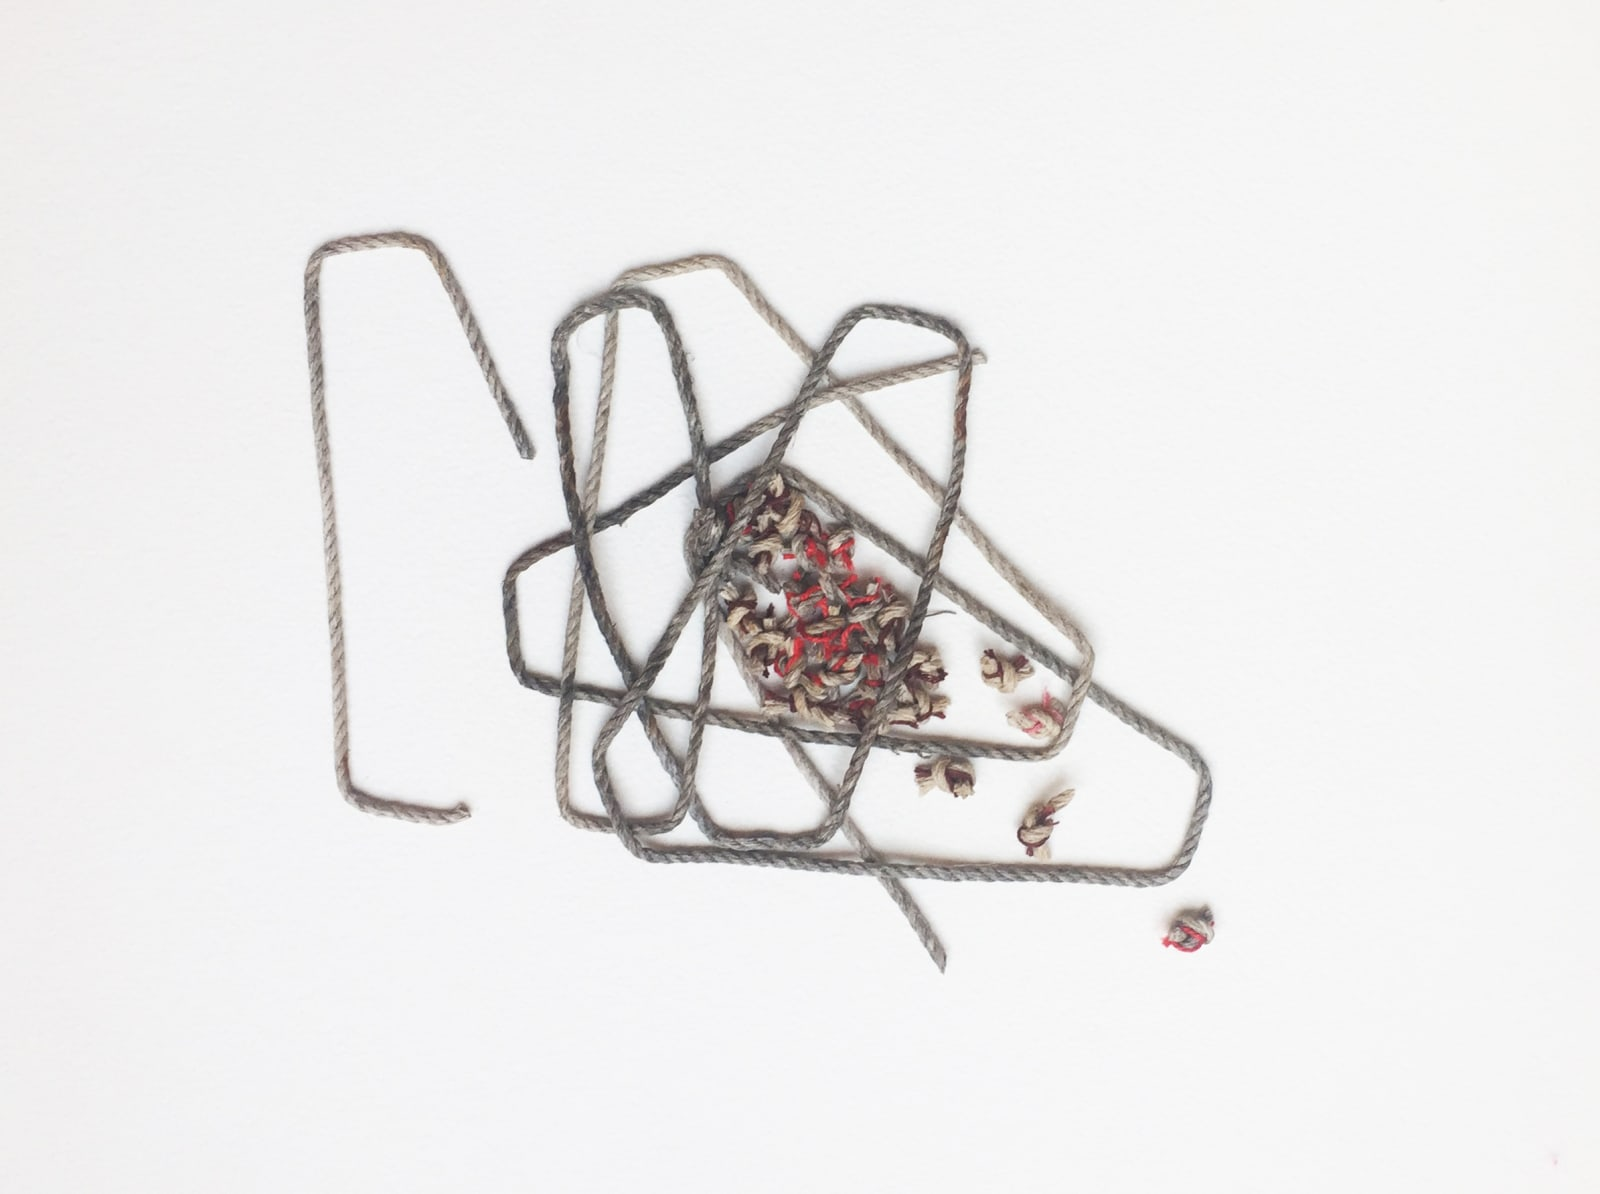 Toni Ross Cursive Drawing #6, 2019 Mixed media on paper 12 x 16 in. (TR 217) $3,200